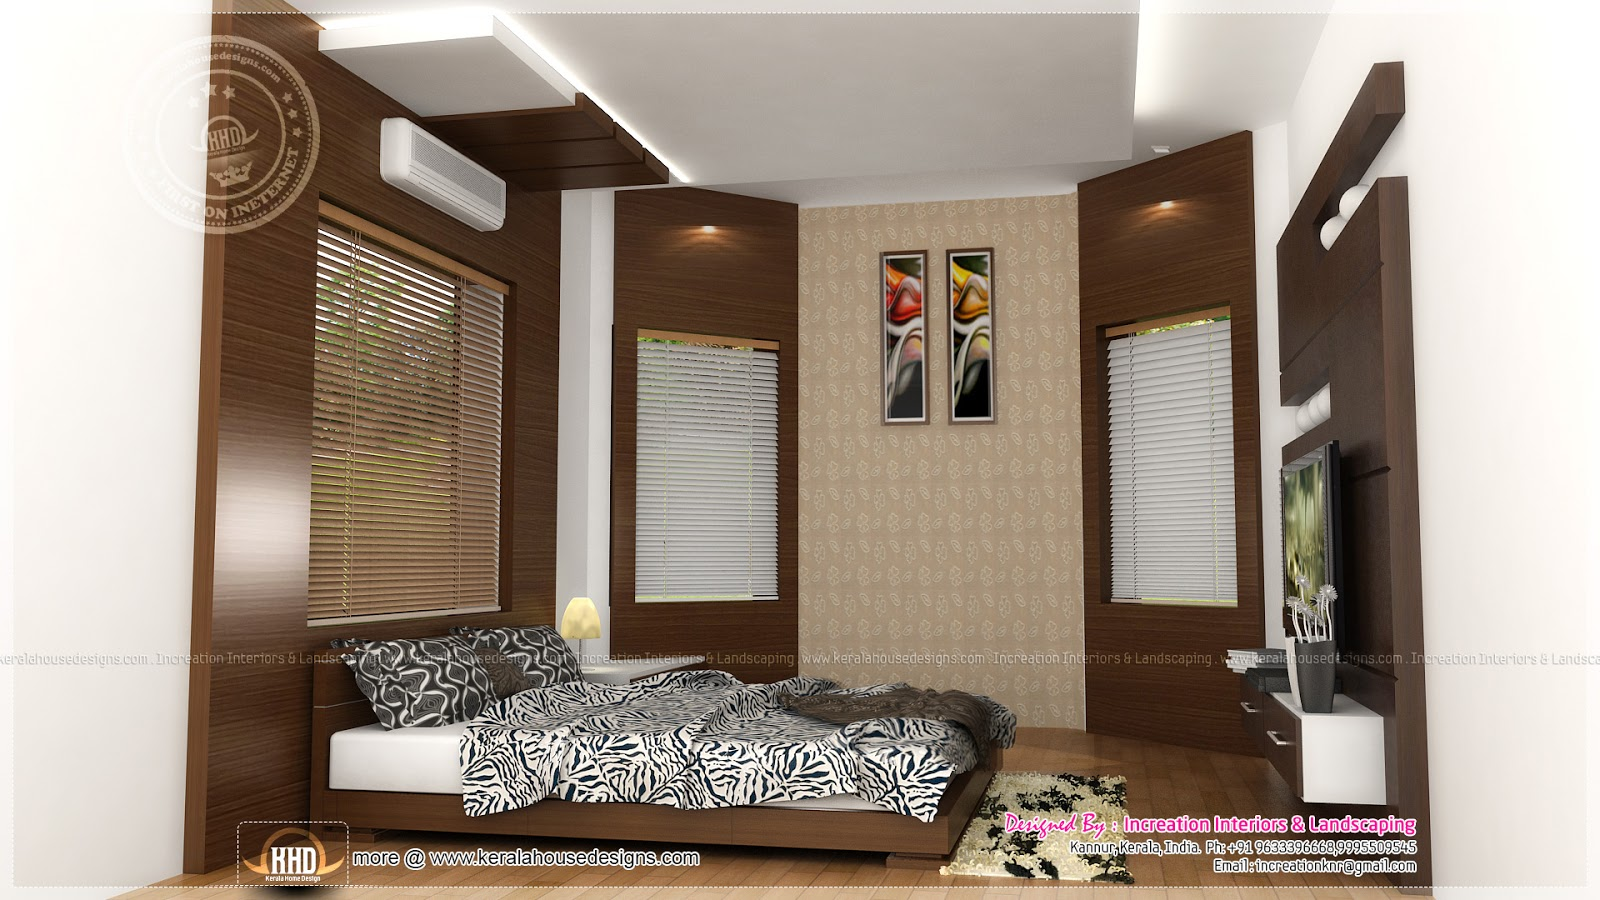 Stunning Master bedroom interior design India ideas - YouTube